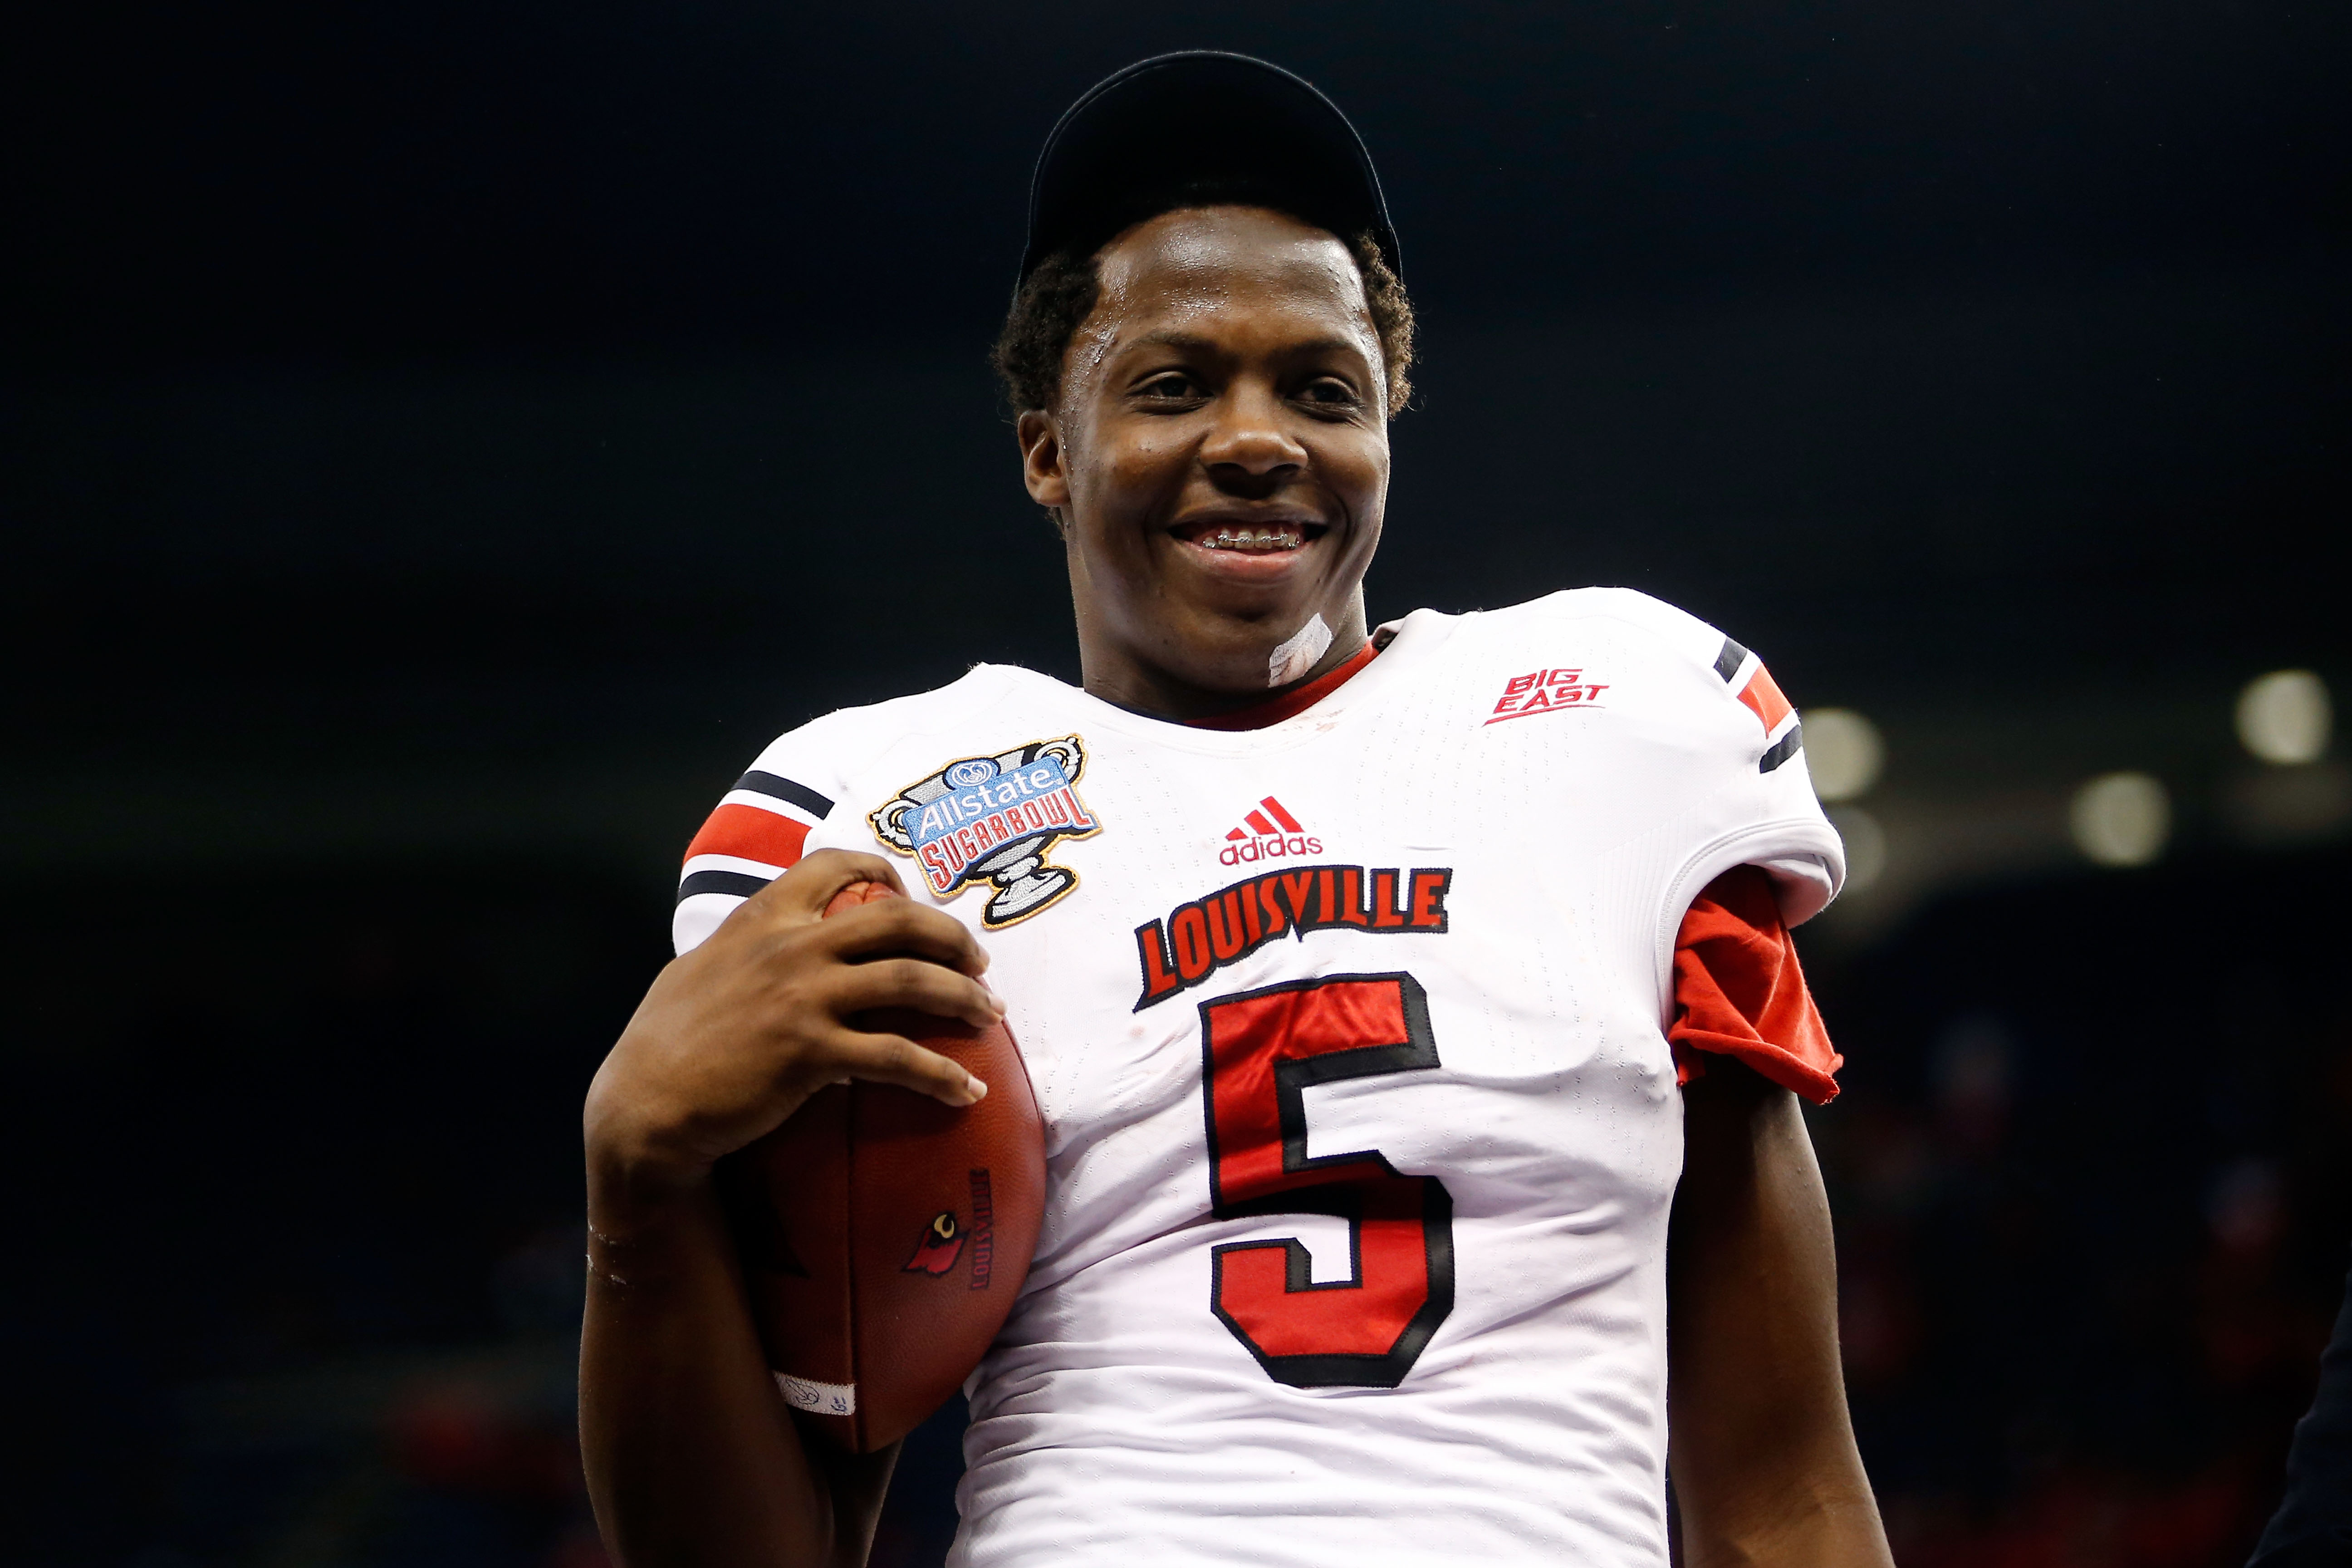 Louisville Quaterback Teddy Bridgewater Shares Special Bond with Offensive Coordinator